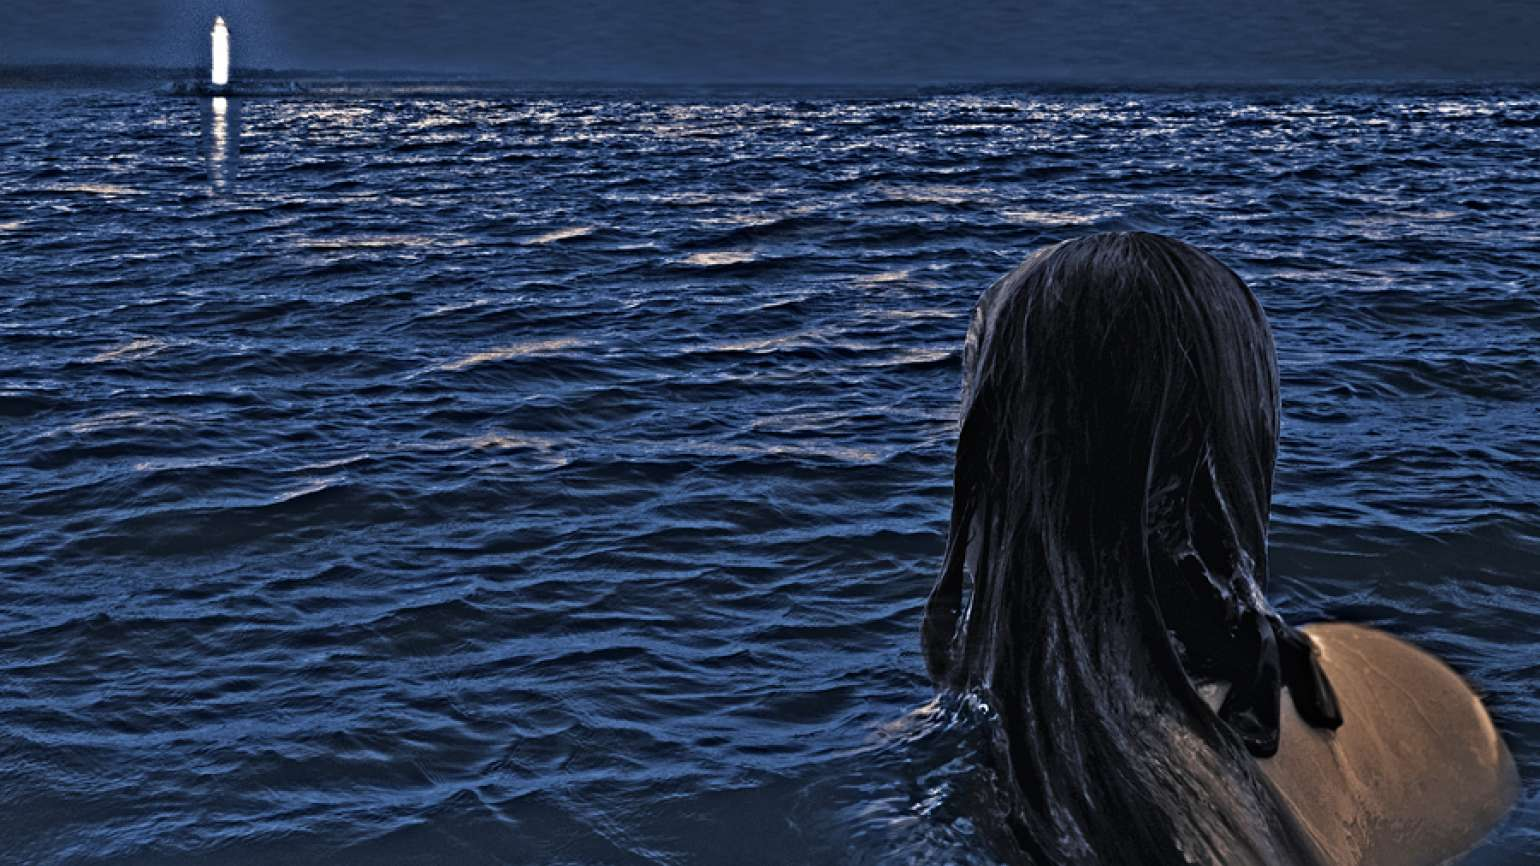 A woman treading water in the ocean gazes at a distant lighthouse.